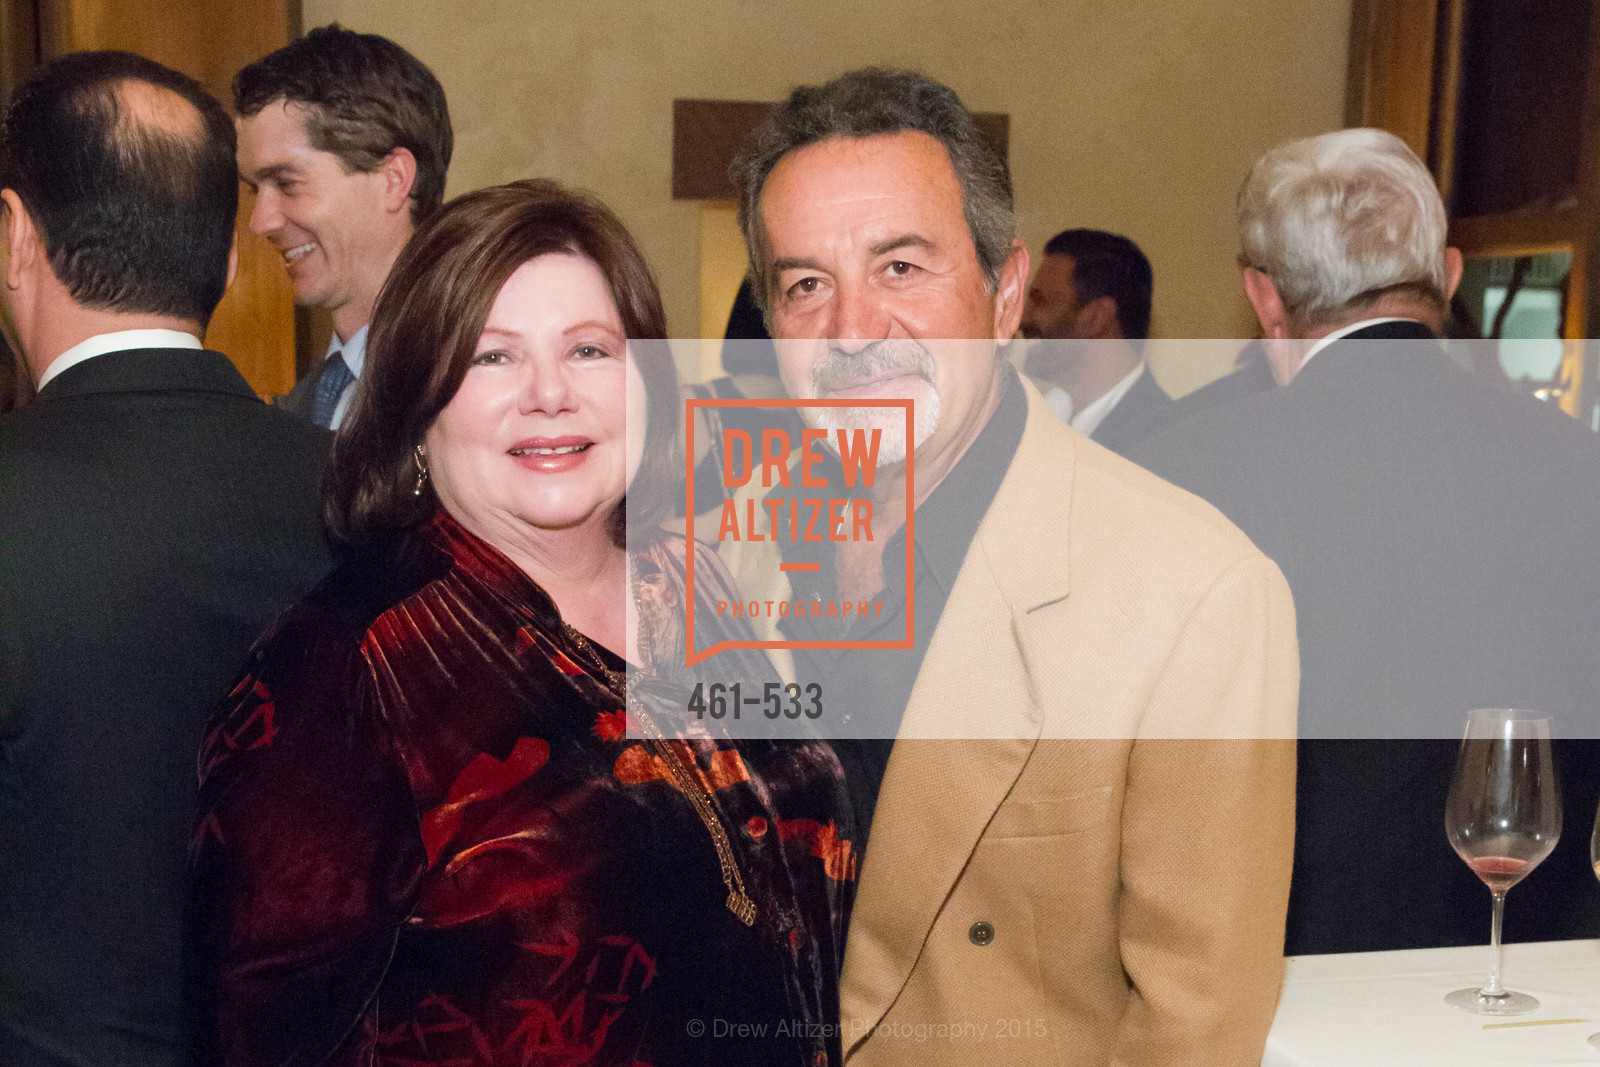 Celia Manitsas, Taso Manitsas, Hellenic Charity Ball Cocktail Reception, Kokkari. 200 Jackson St, San Francisco, CA 94111, November 13th, 2015,Drew Altizer, Drew Altizer Photography, full-service agency, private events, San Francisco photographer, photographer california